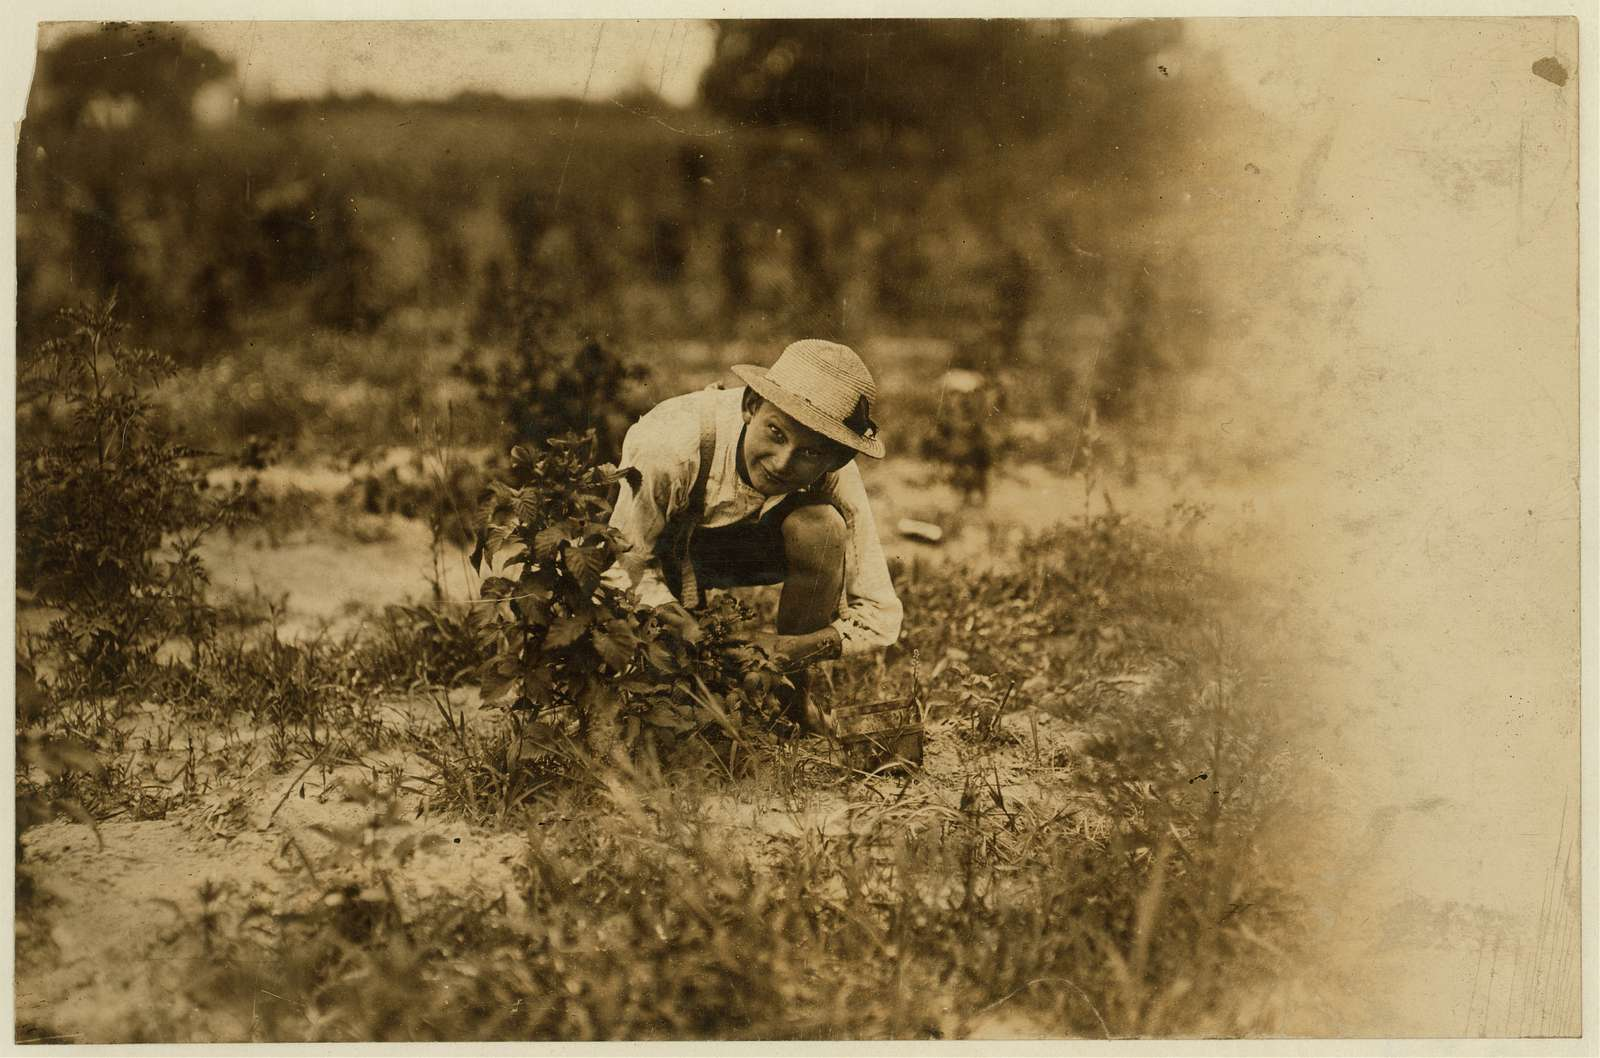 """Farrand Packing Co. A young berry picker on Curran's farm, Rock Creek. This boy, Irvan Stevans, and the other (see 828) were the only whites working with a large number of negroes that day, and bad language was abundant. Says he works from """"sunup to sundown"""" and has been working 3 summers. On card with captions for both #827 and #828: Norris Lovitt. Been picking for 3 years in berry fields near Baltimore, Md. (See 827 and label). July 8, 1909. Location: Baltimore, Maryland"""